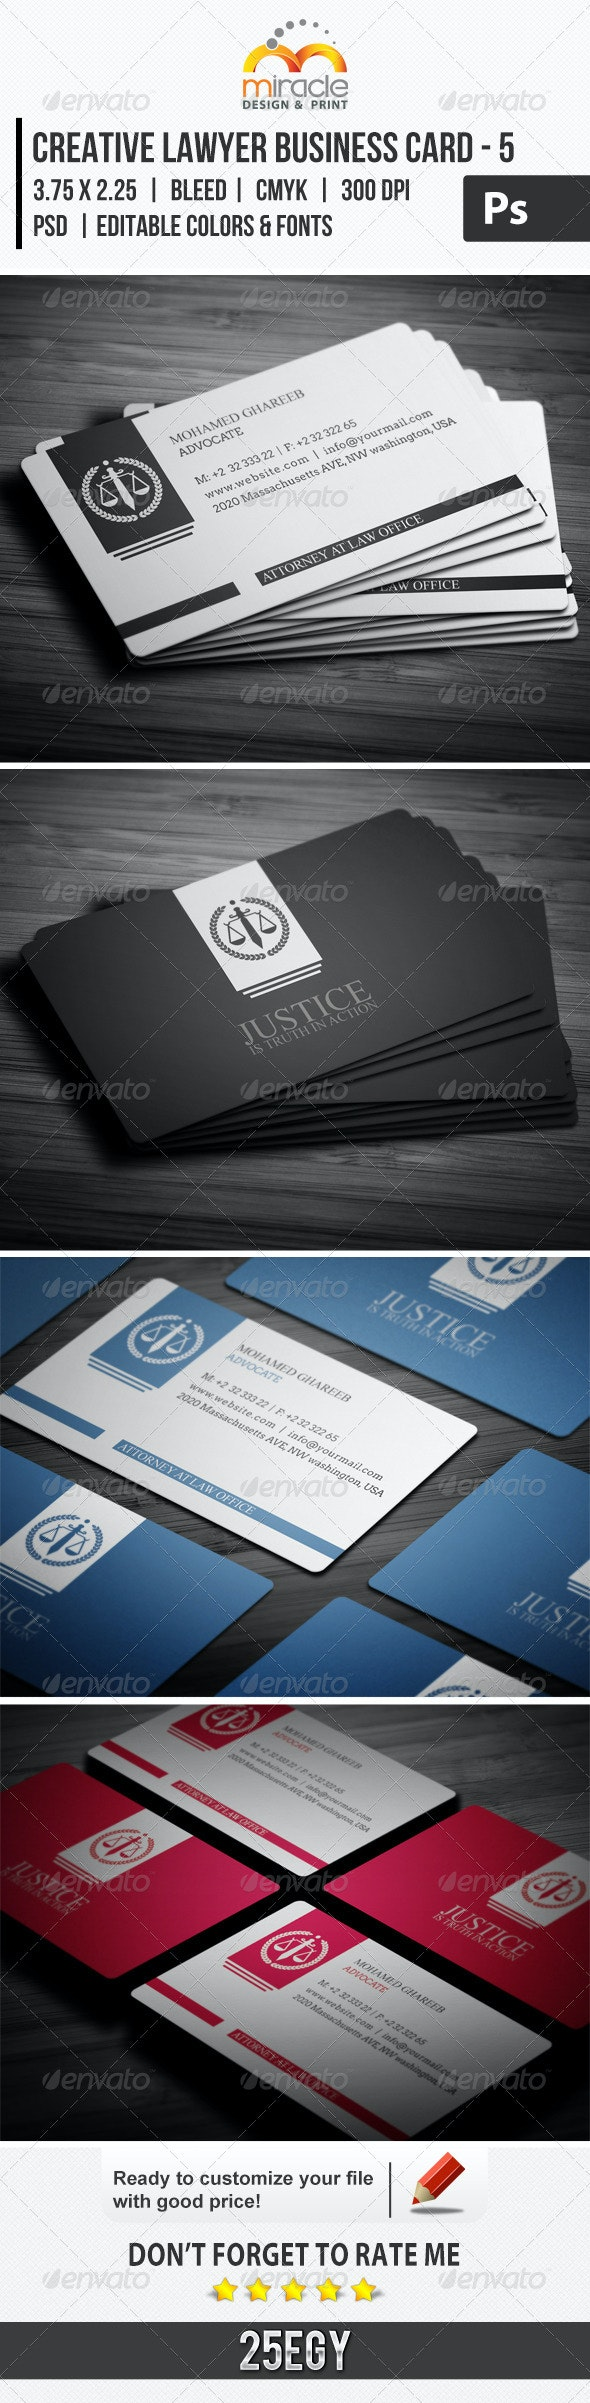 Creative Lawyer Business Card #5 - Industry Specific Business Cards